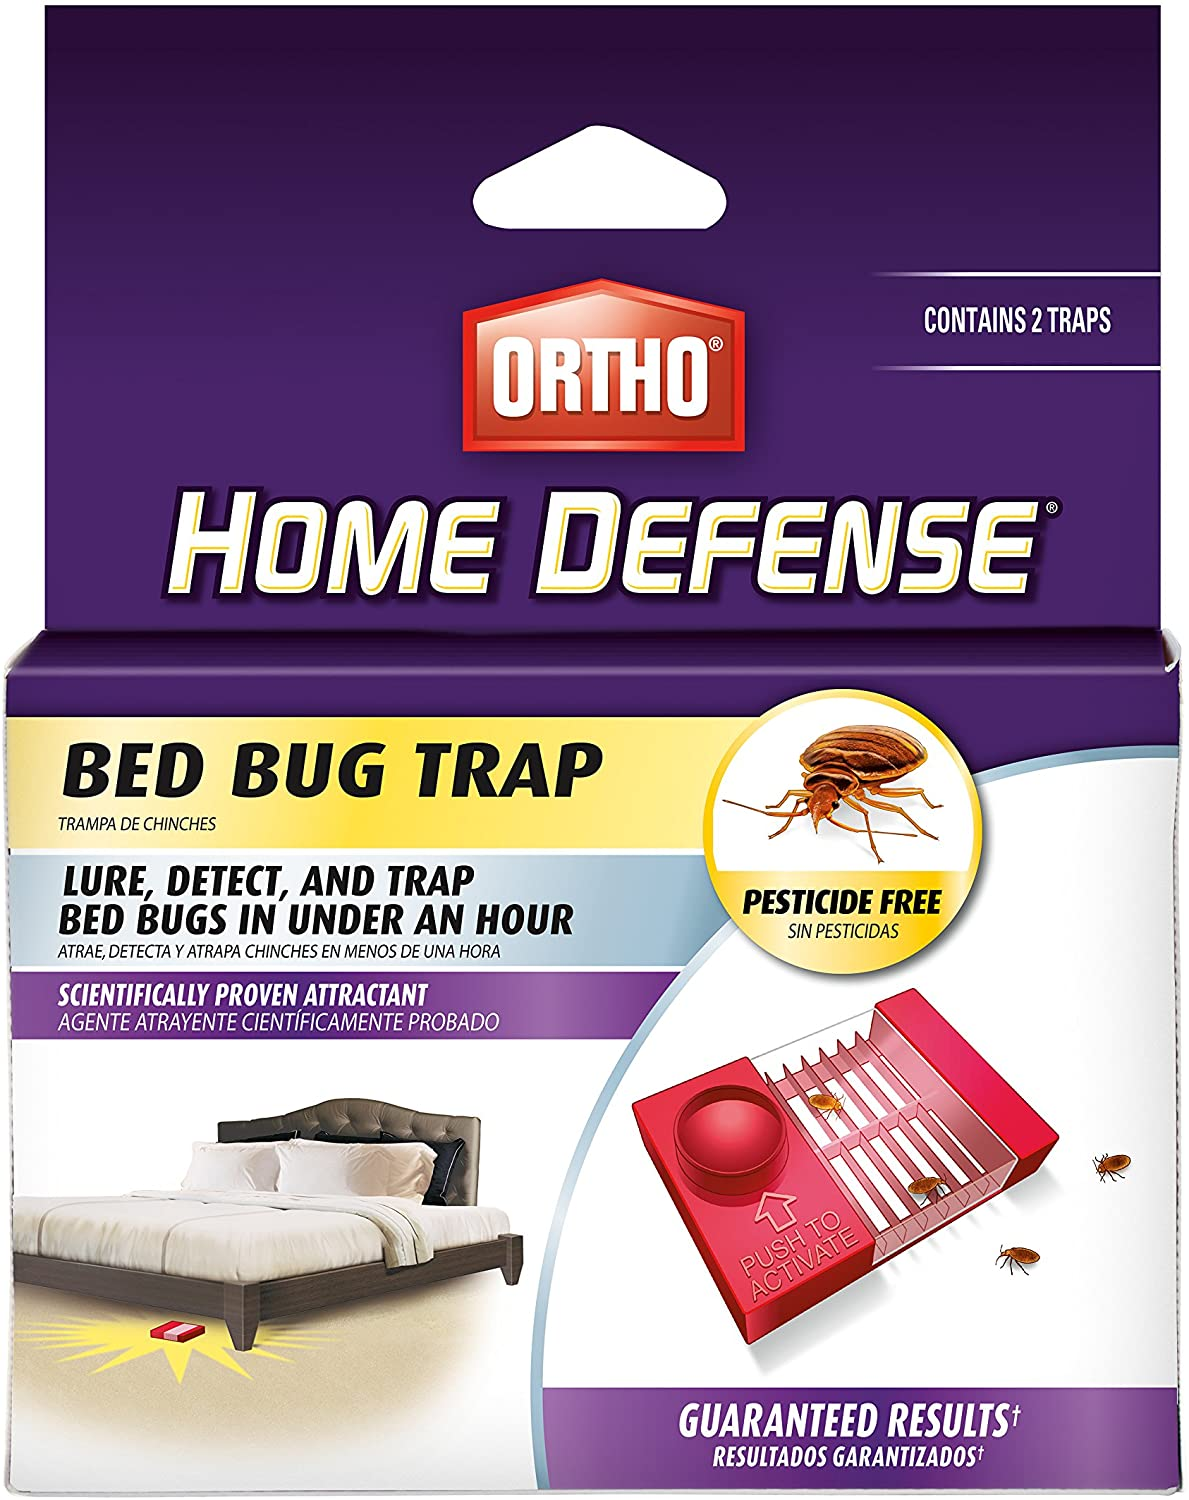 Ortho Home Defense Bed Bug Trap